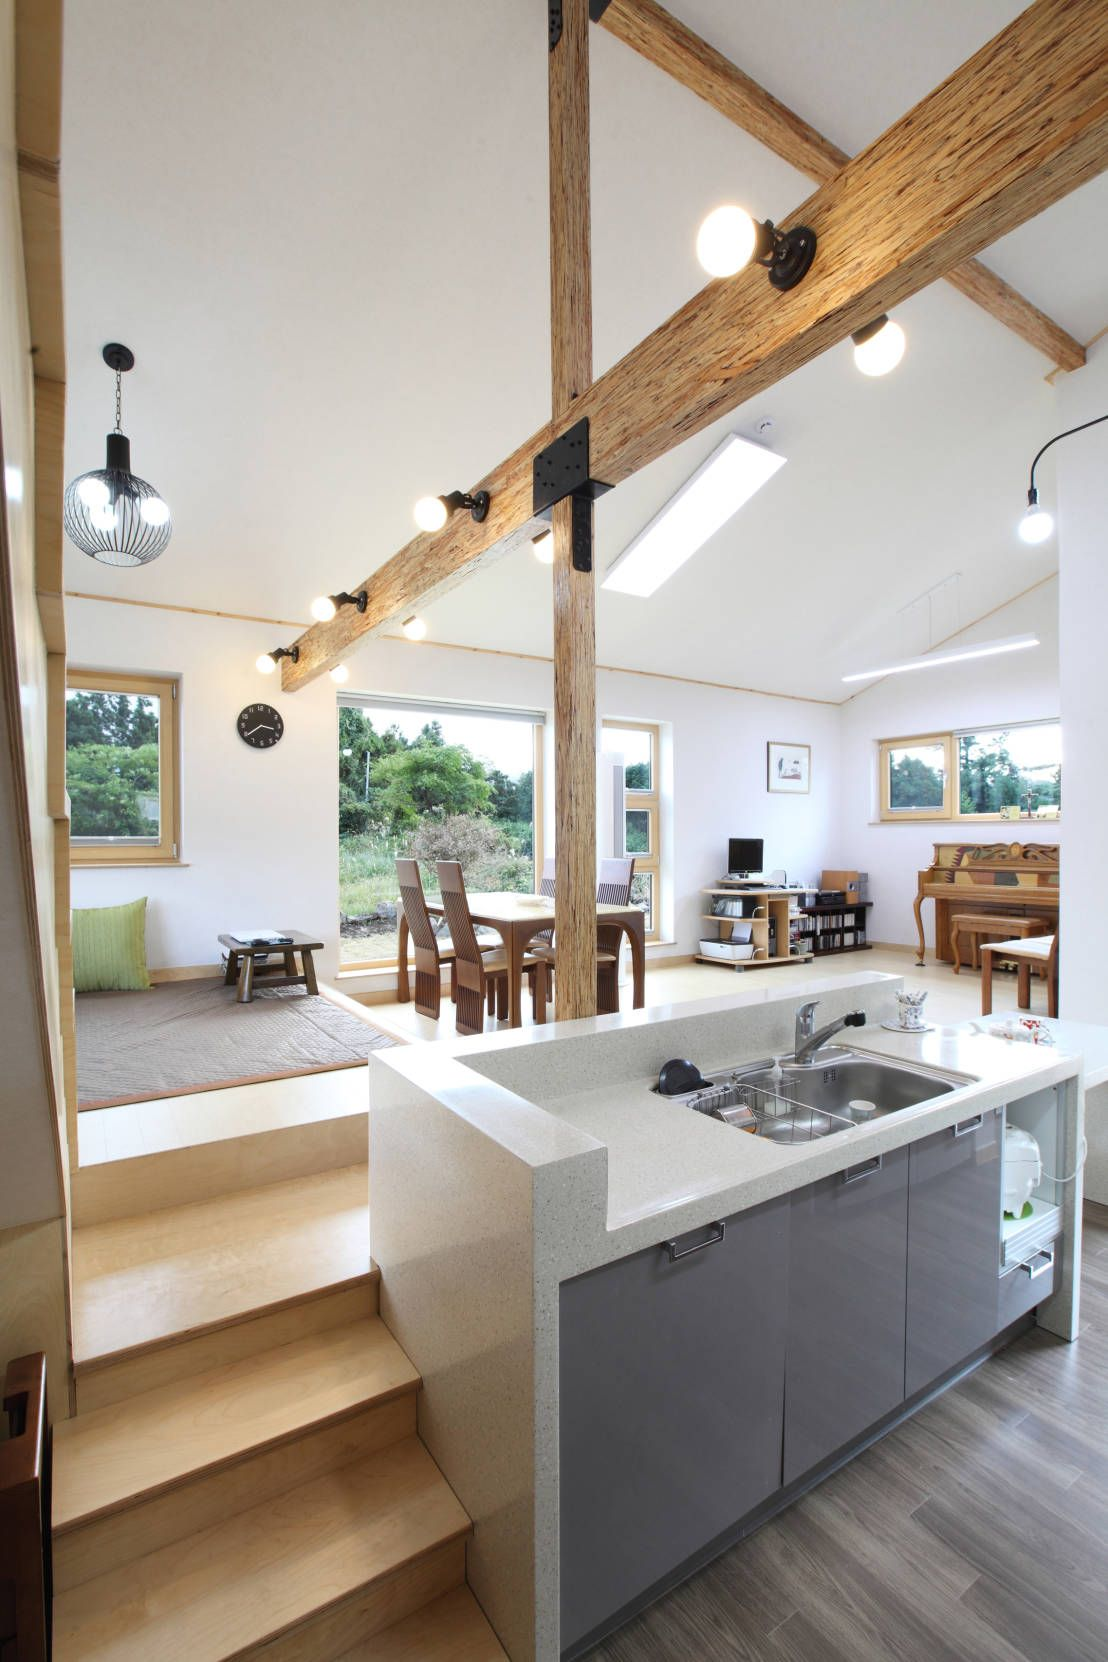 The Country Home Alone on Jeju Island | Interiors | Pinterest ...